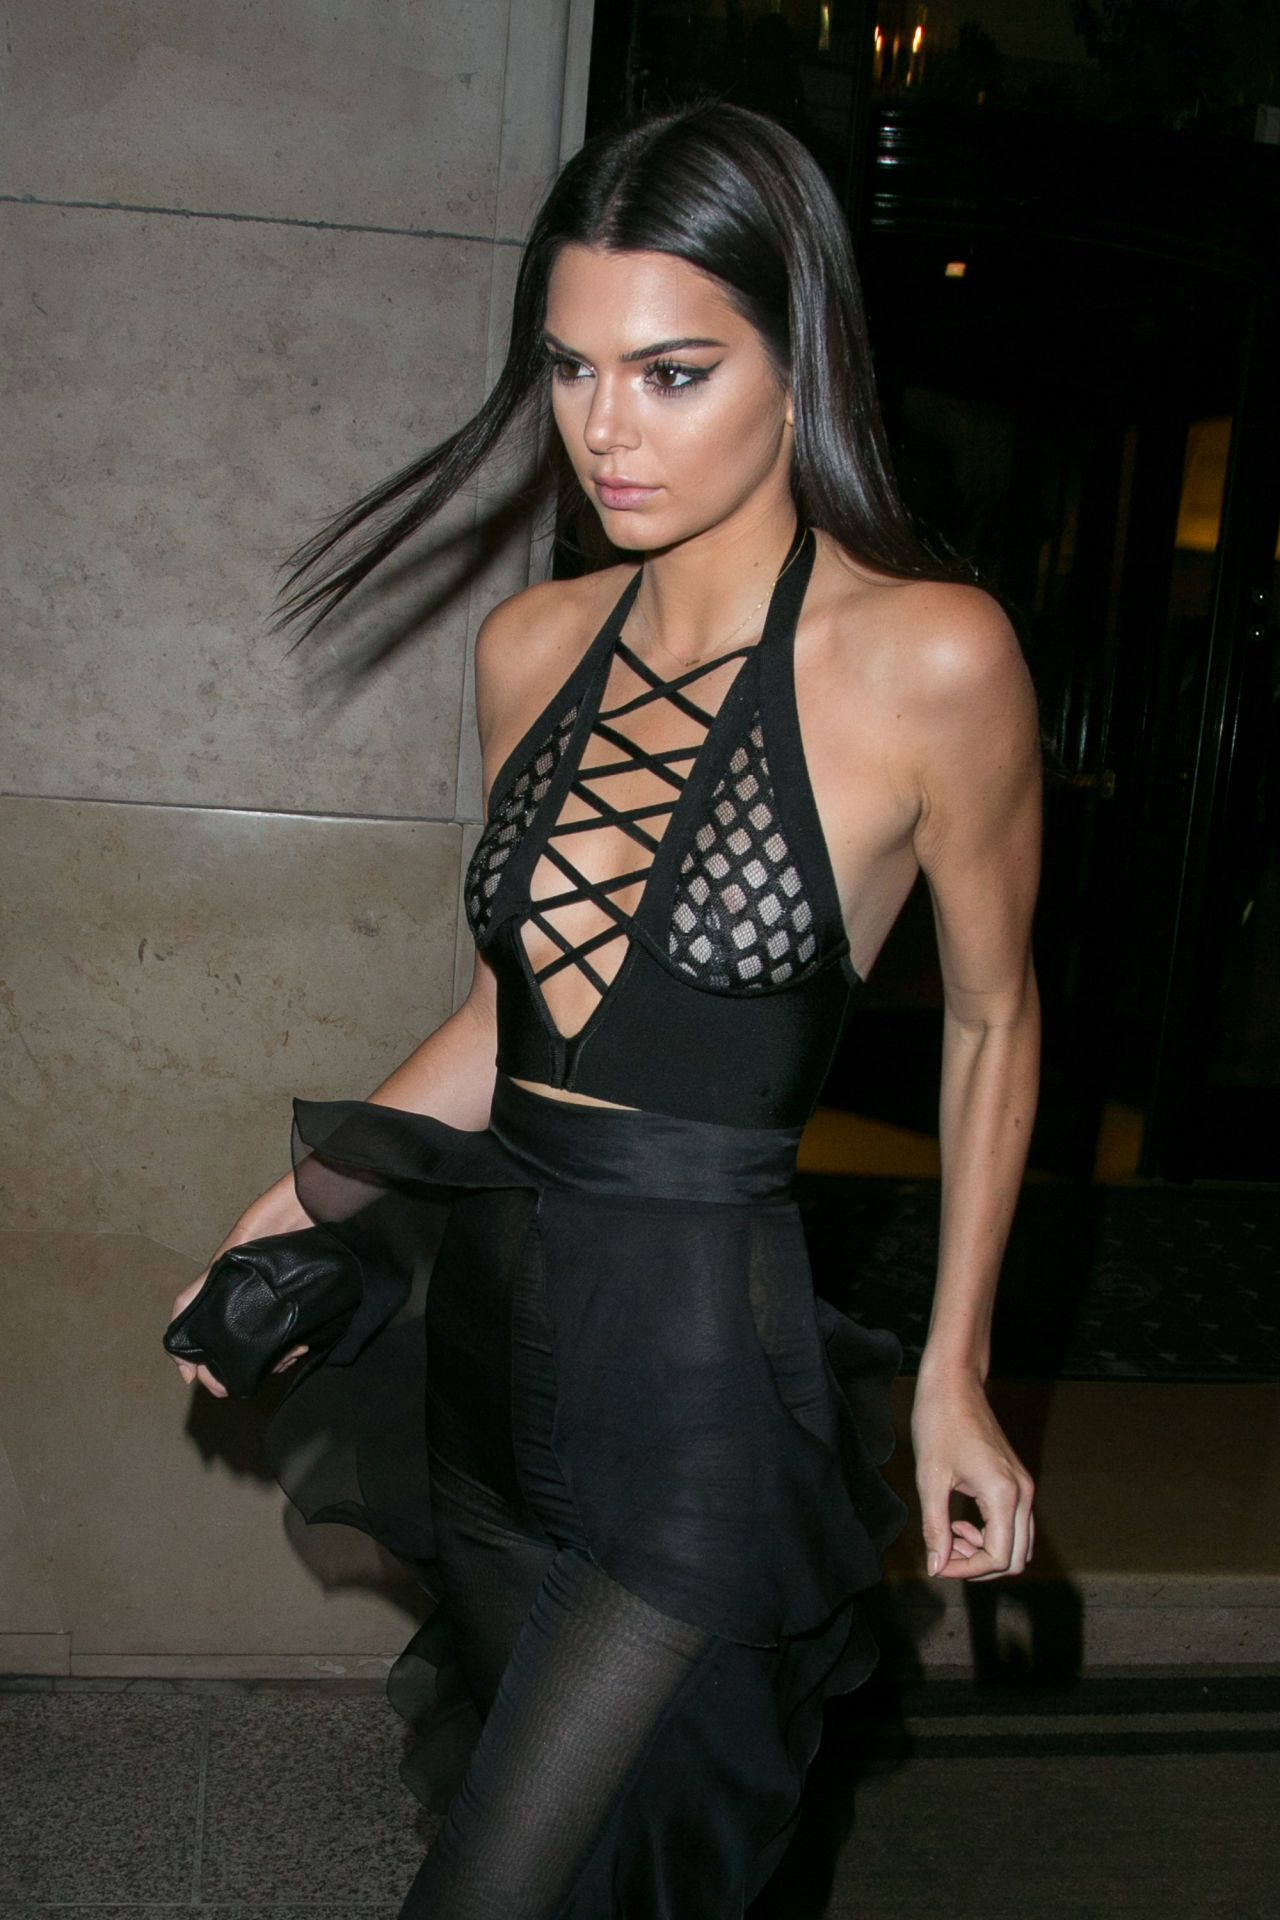 kendall jenner's nipples, bare butt had a big night out on the town